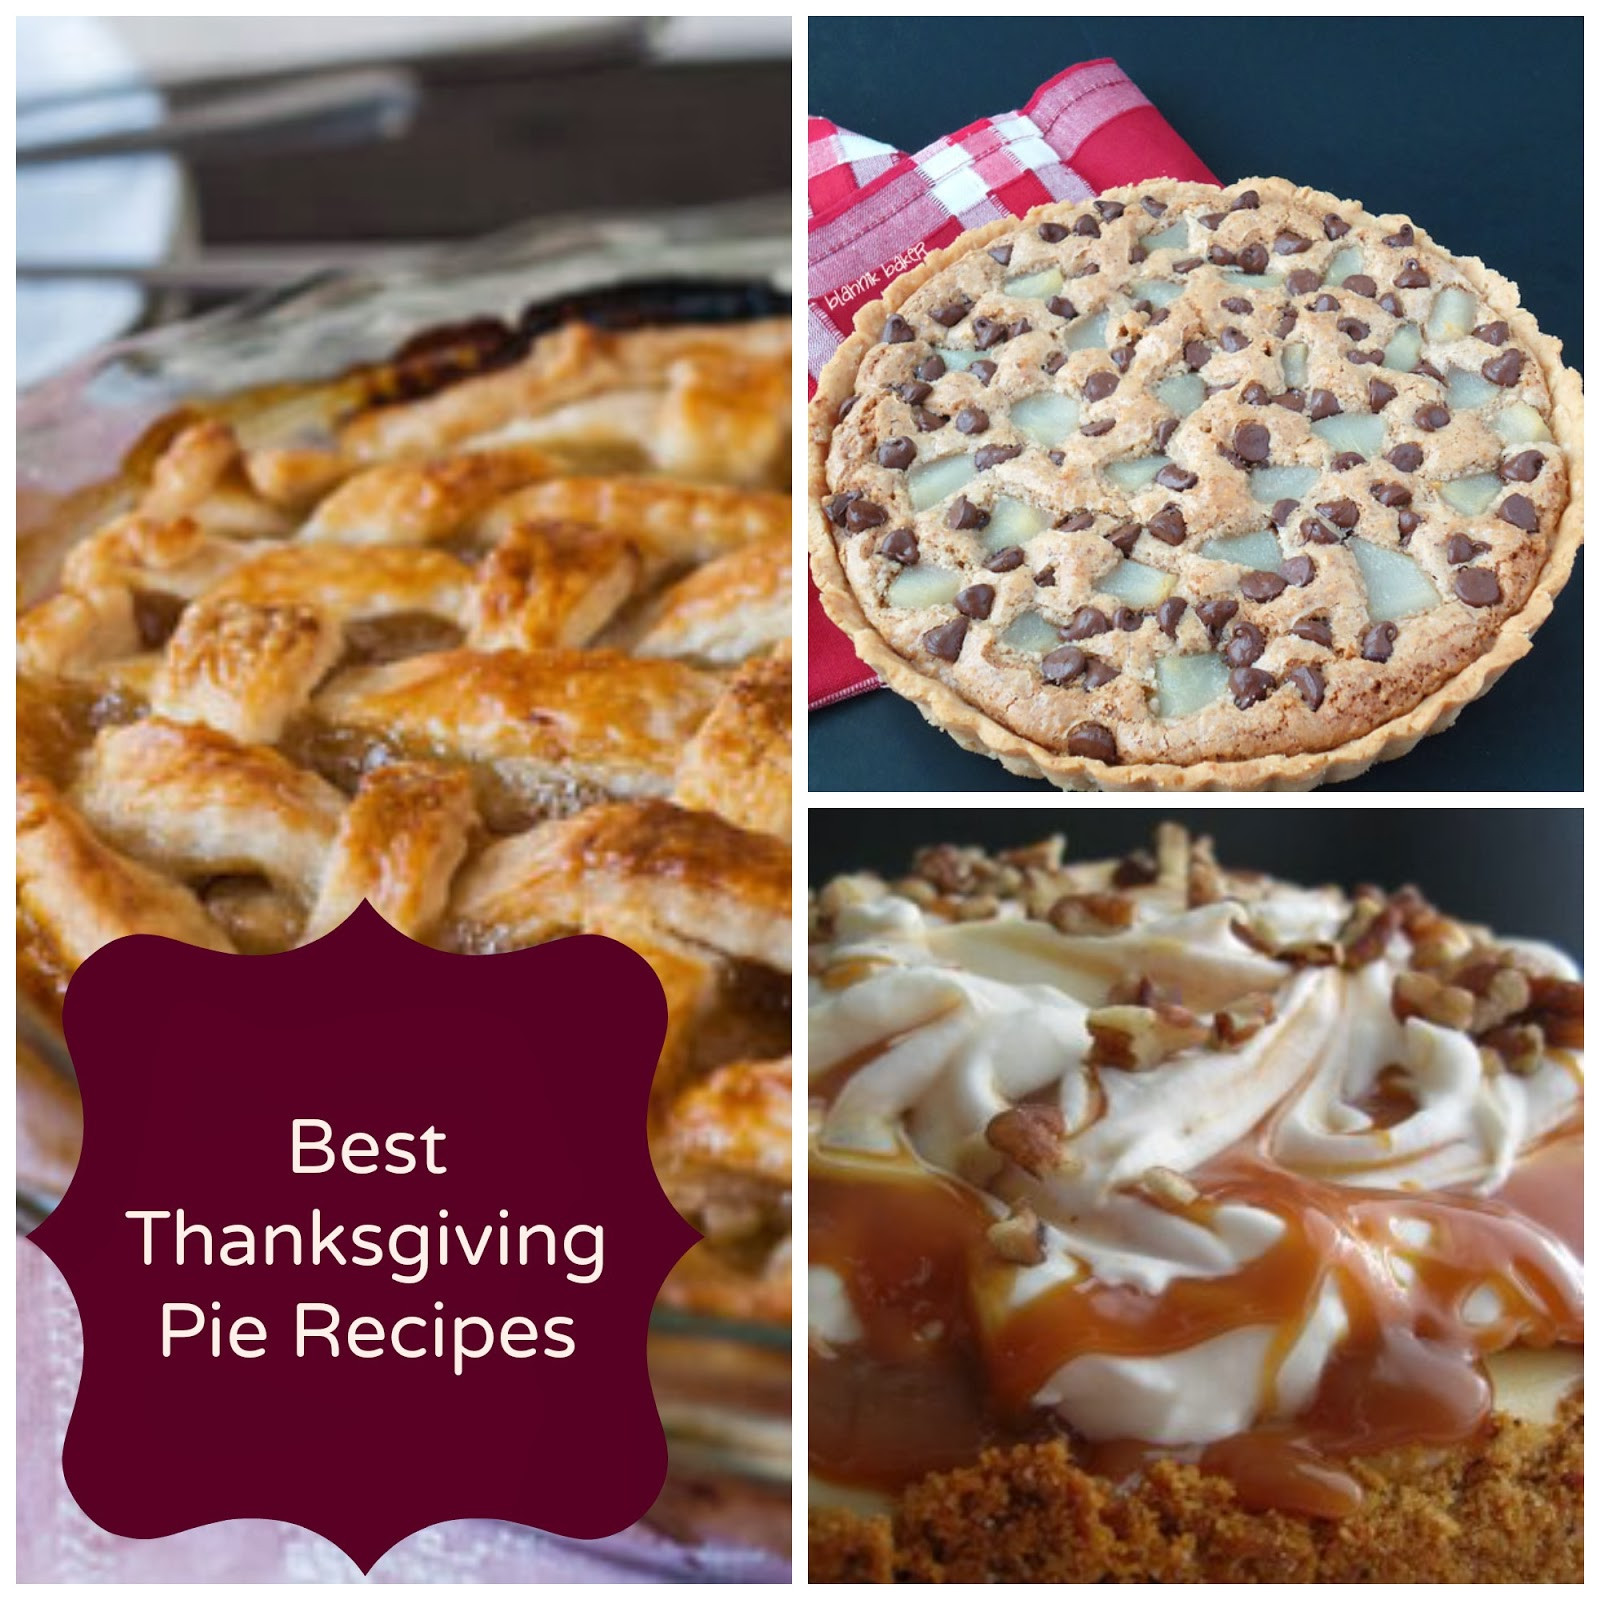 Best Thanksgiving Pies Recipes  Decorating Pennies Best Thanksgiving Pie Recipes